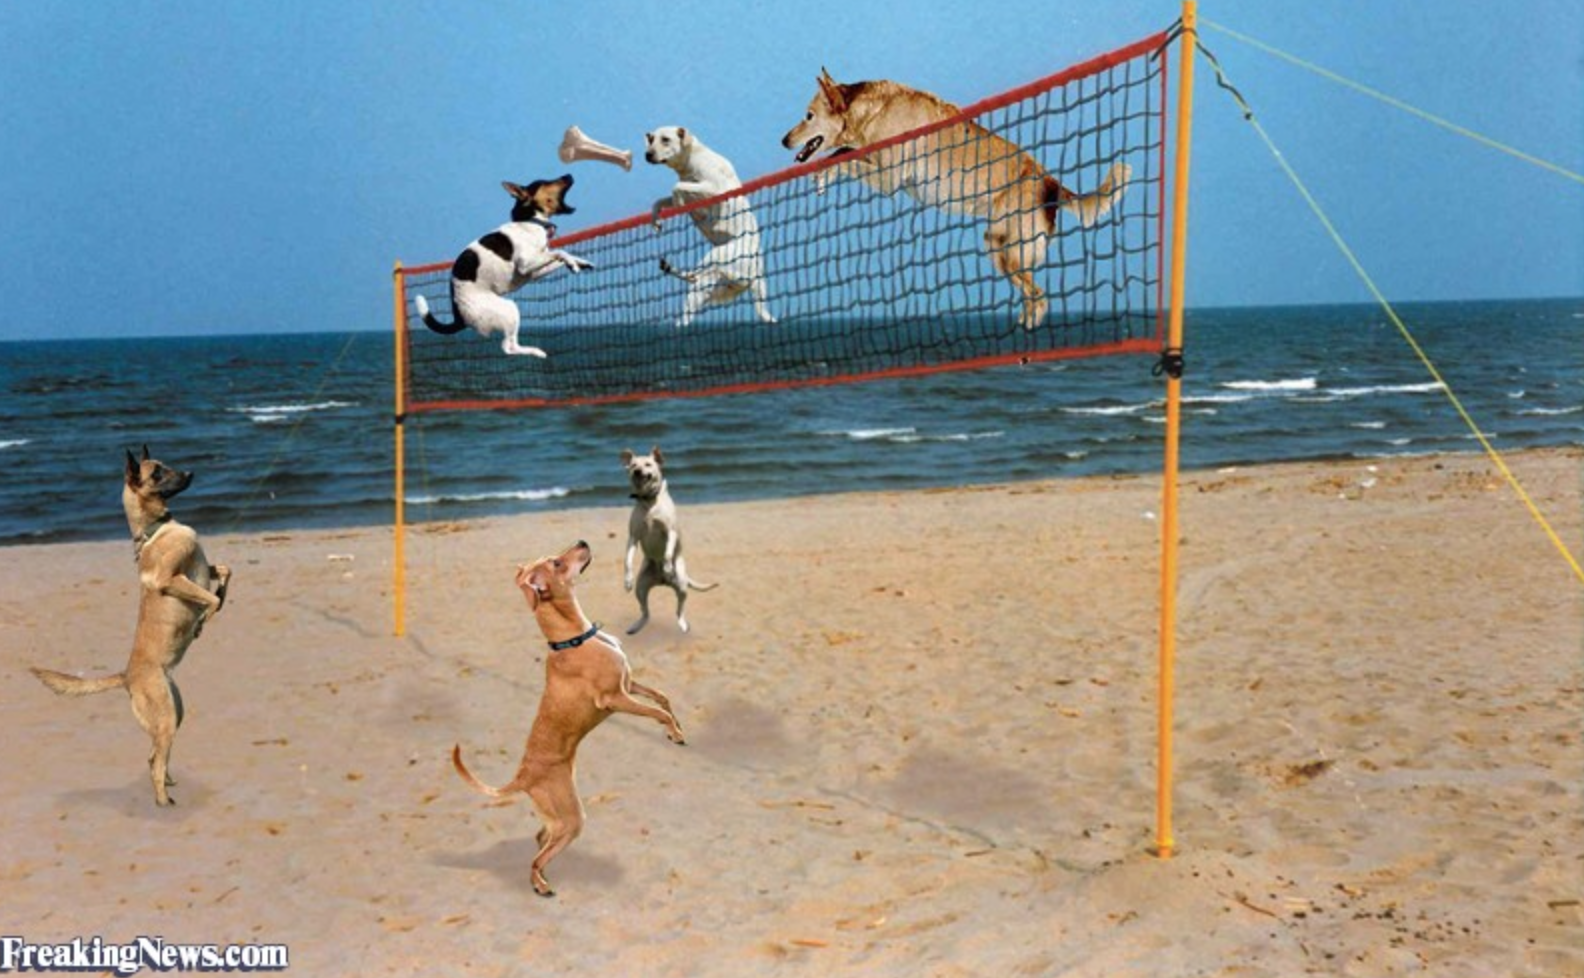 Pawsitively Awesome Beach Volleyball Plays By DOGS!